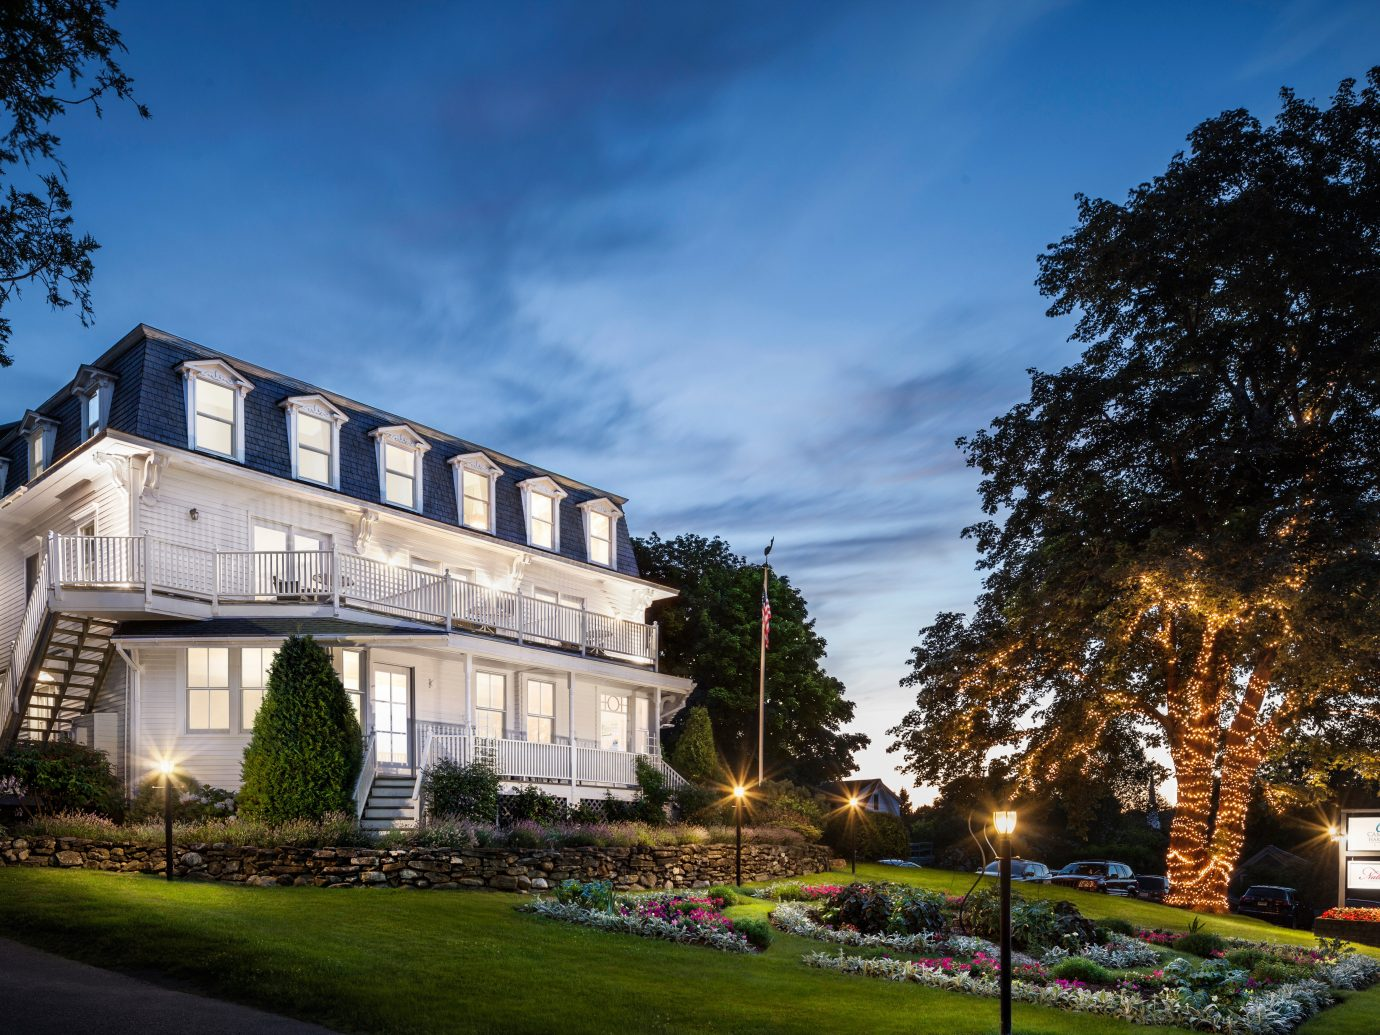 Elegant Exterior Historic Inn Trip Ideas outdoor sky tree building grass house estate neighbourhood home Architecture residential area mansion lawn château government building